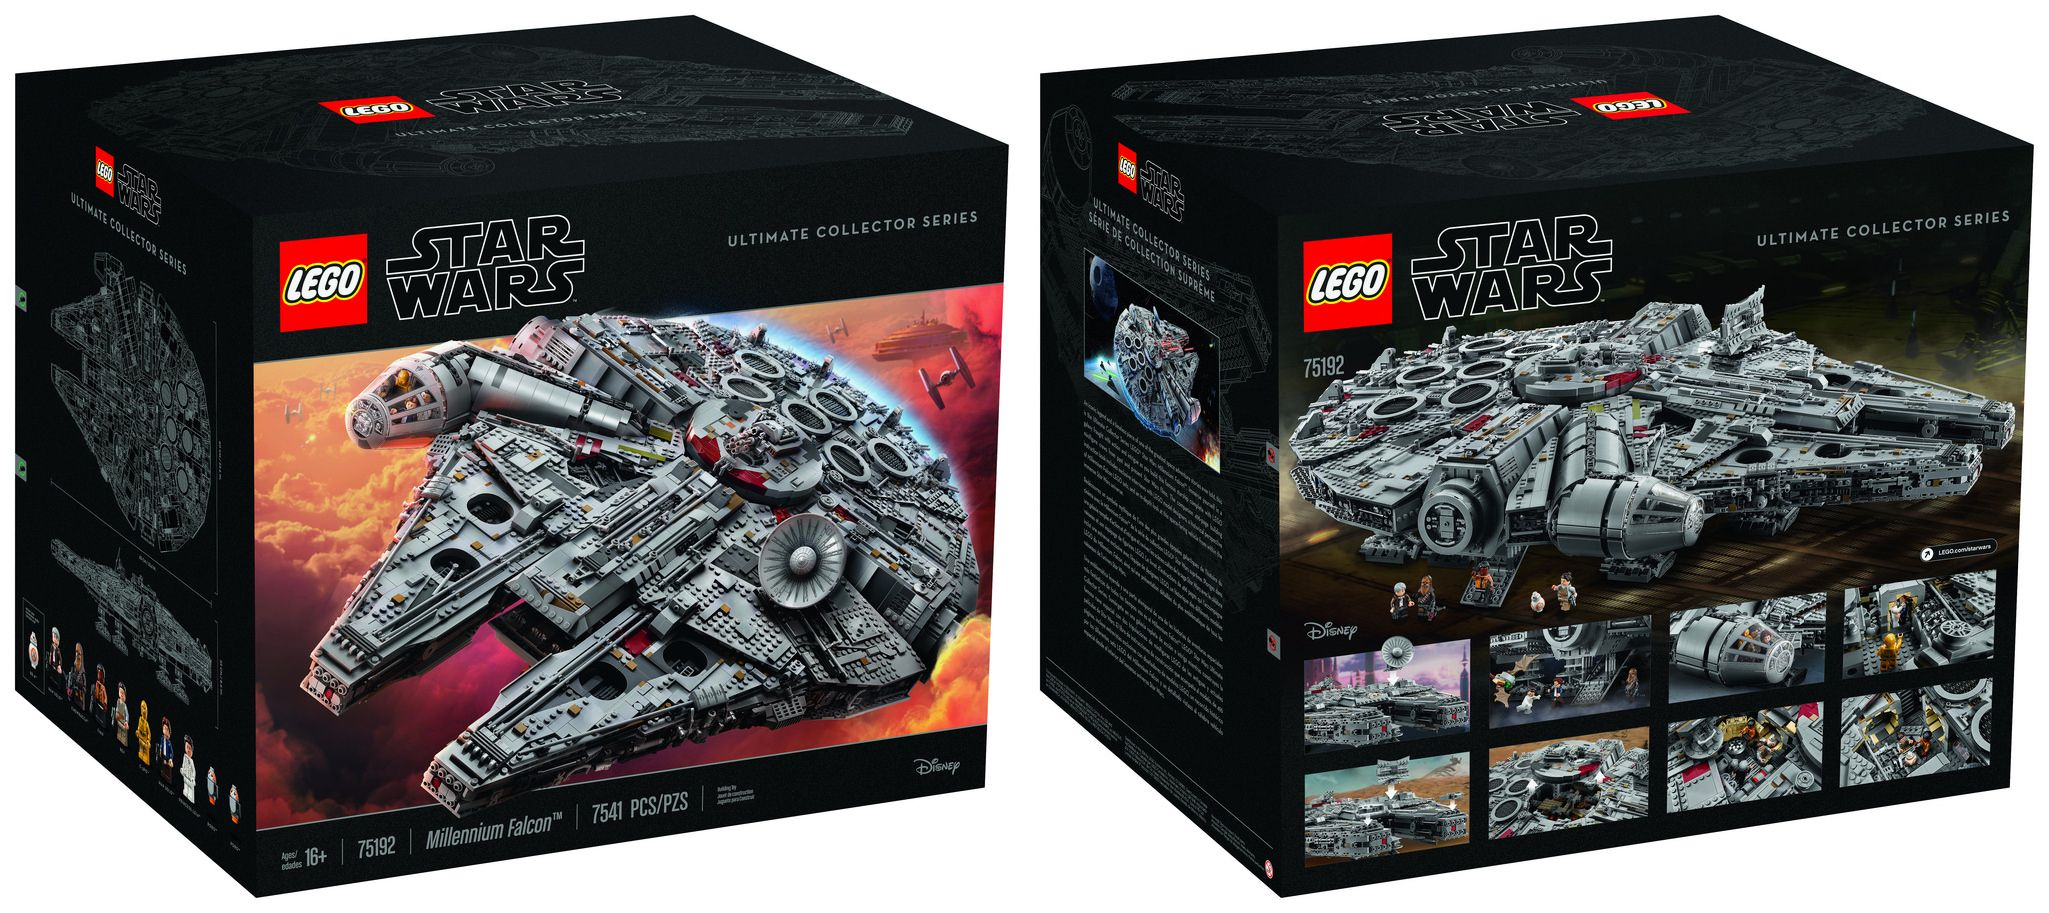 This 7 541 Piece Millennium Falcon Is The Largest Most Desirable